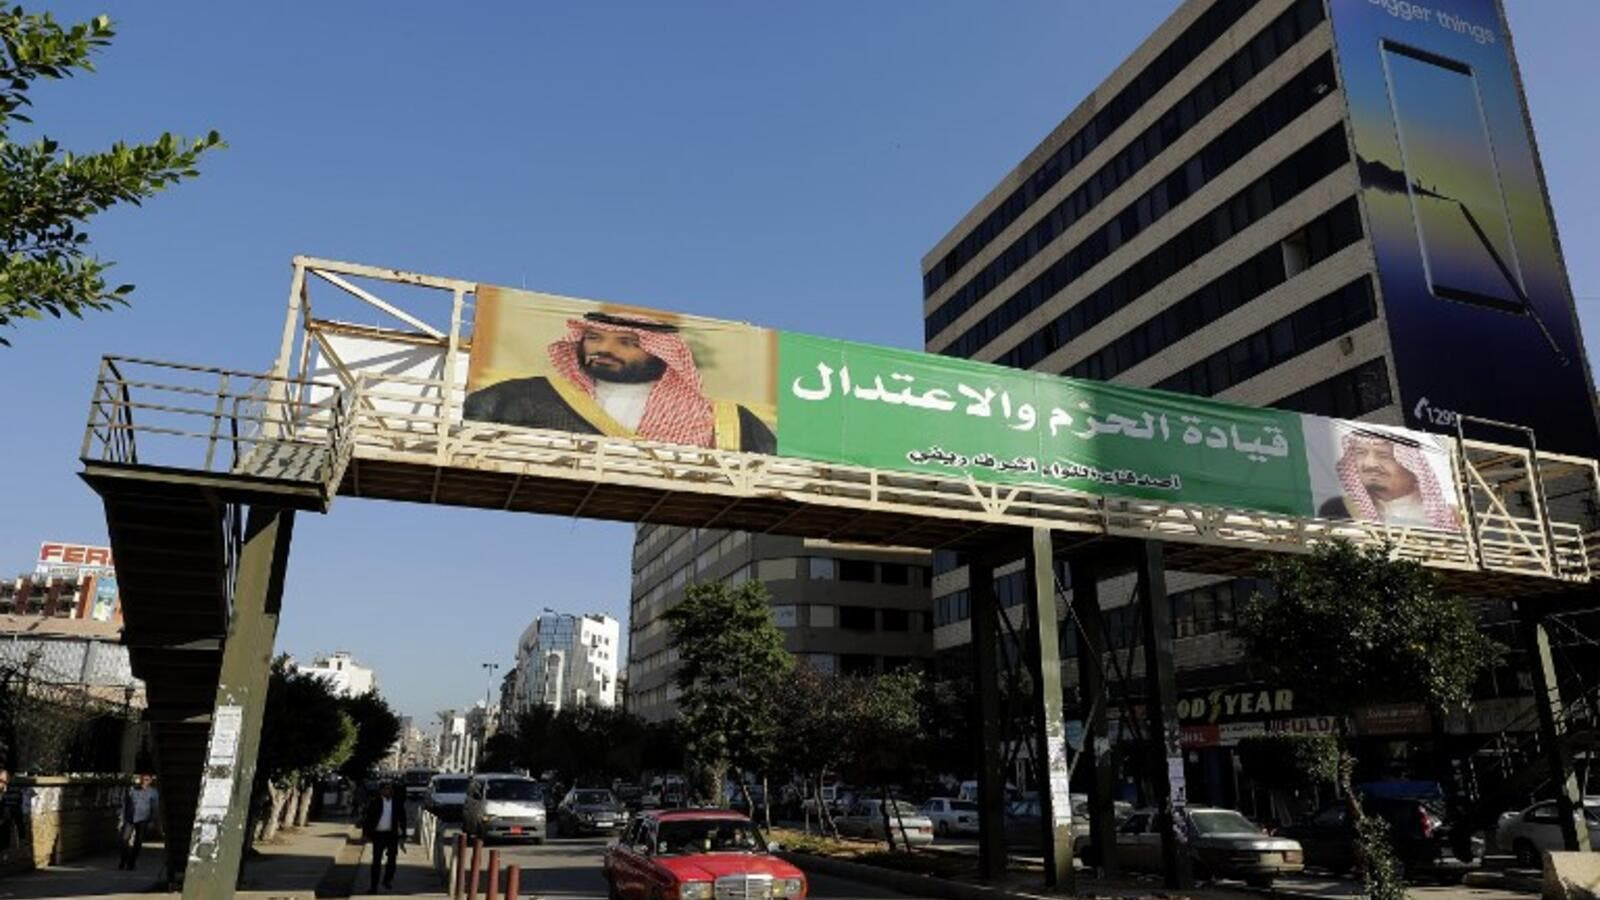 "banner bearing the images of Saudi King Salman bin Abdulaziz (R) and Crown Prince Mohammed bin Salman (L) hangs on a pedestrian crossing bridge in the northern Lebanese port city of Tripoli. The caption in Arabic says: ""firm and moderating leadership"". (JOSEPH EID / AFP)"